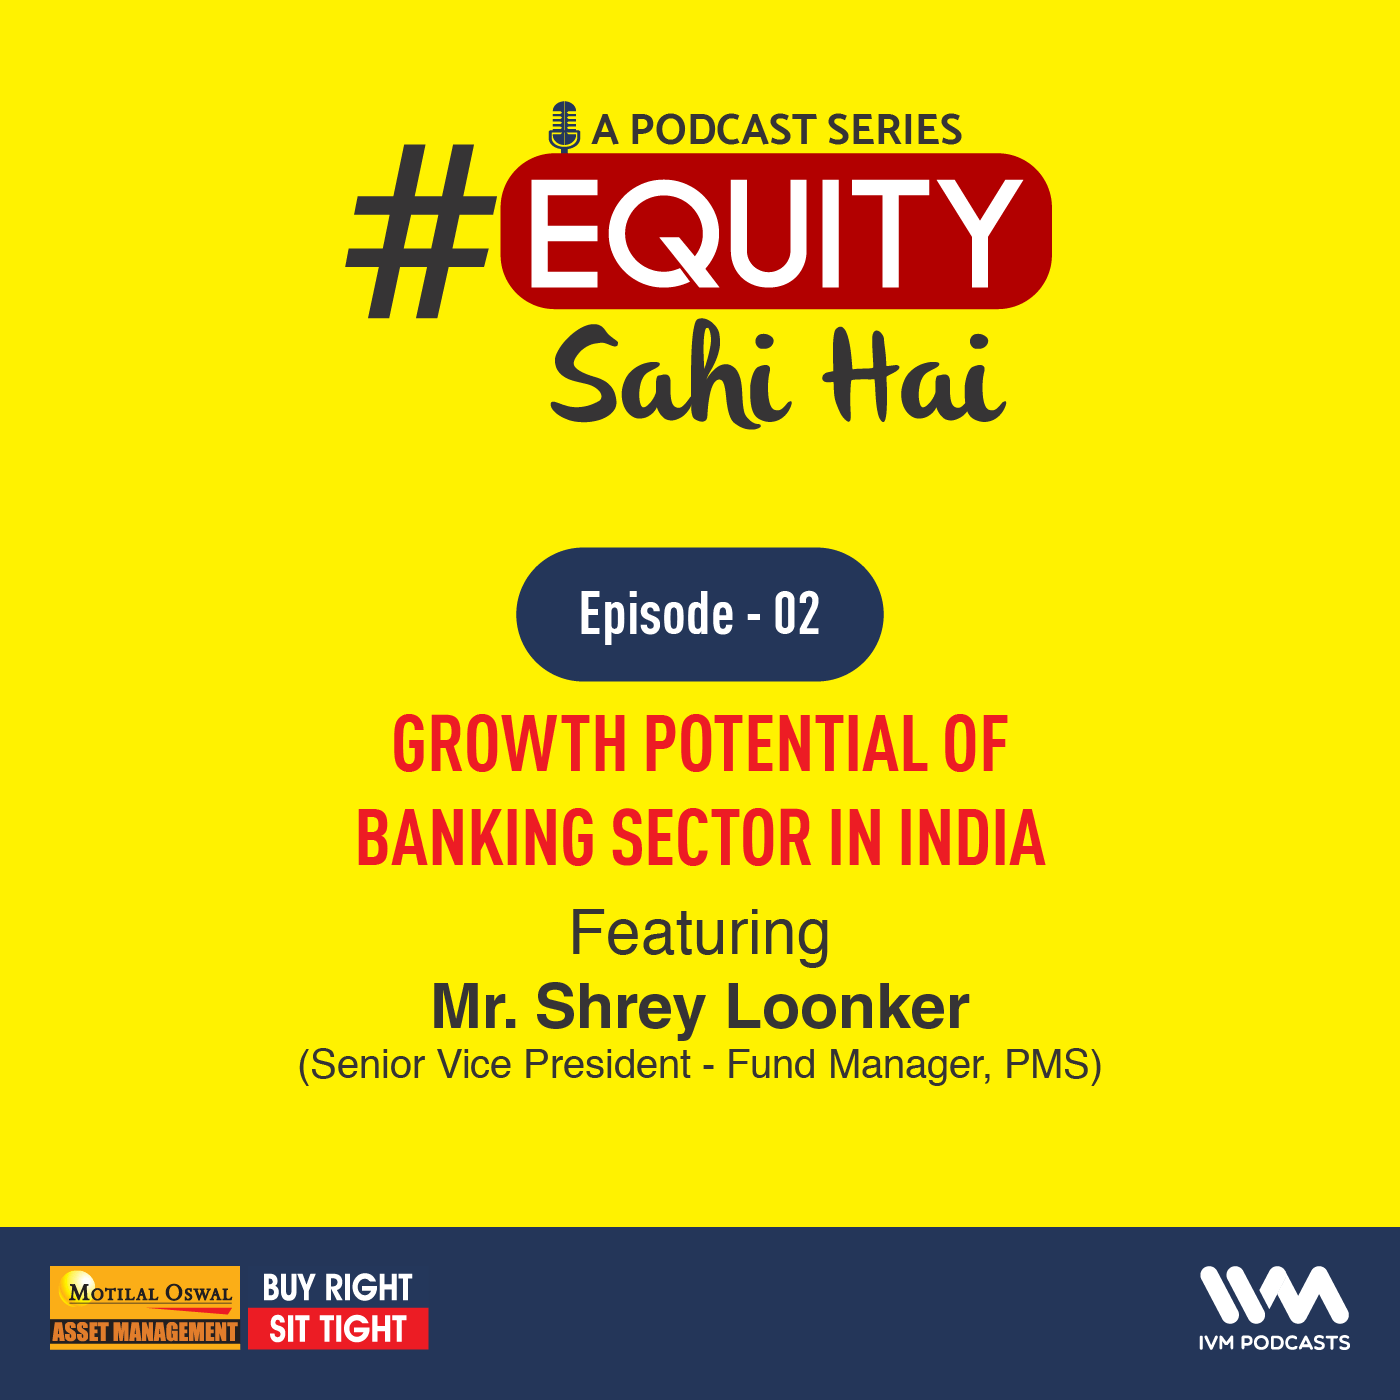 Ep. 02: Growth Potential of Banking Sector in India